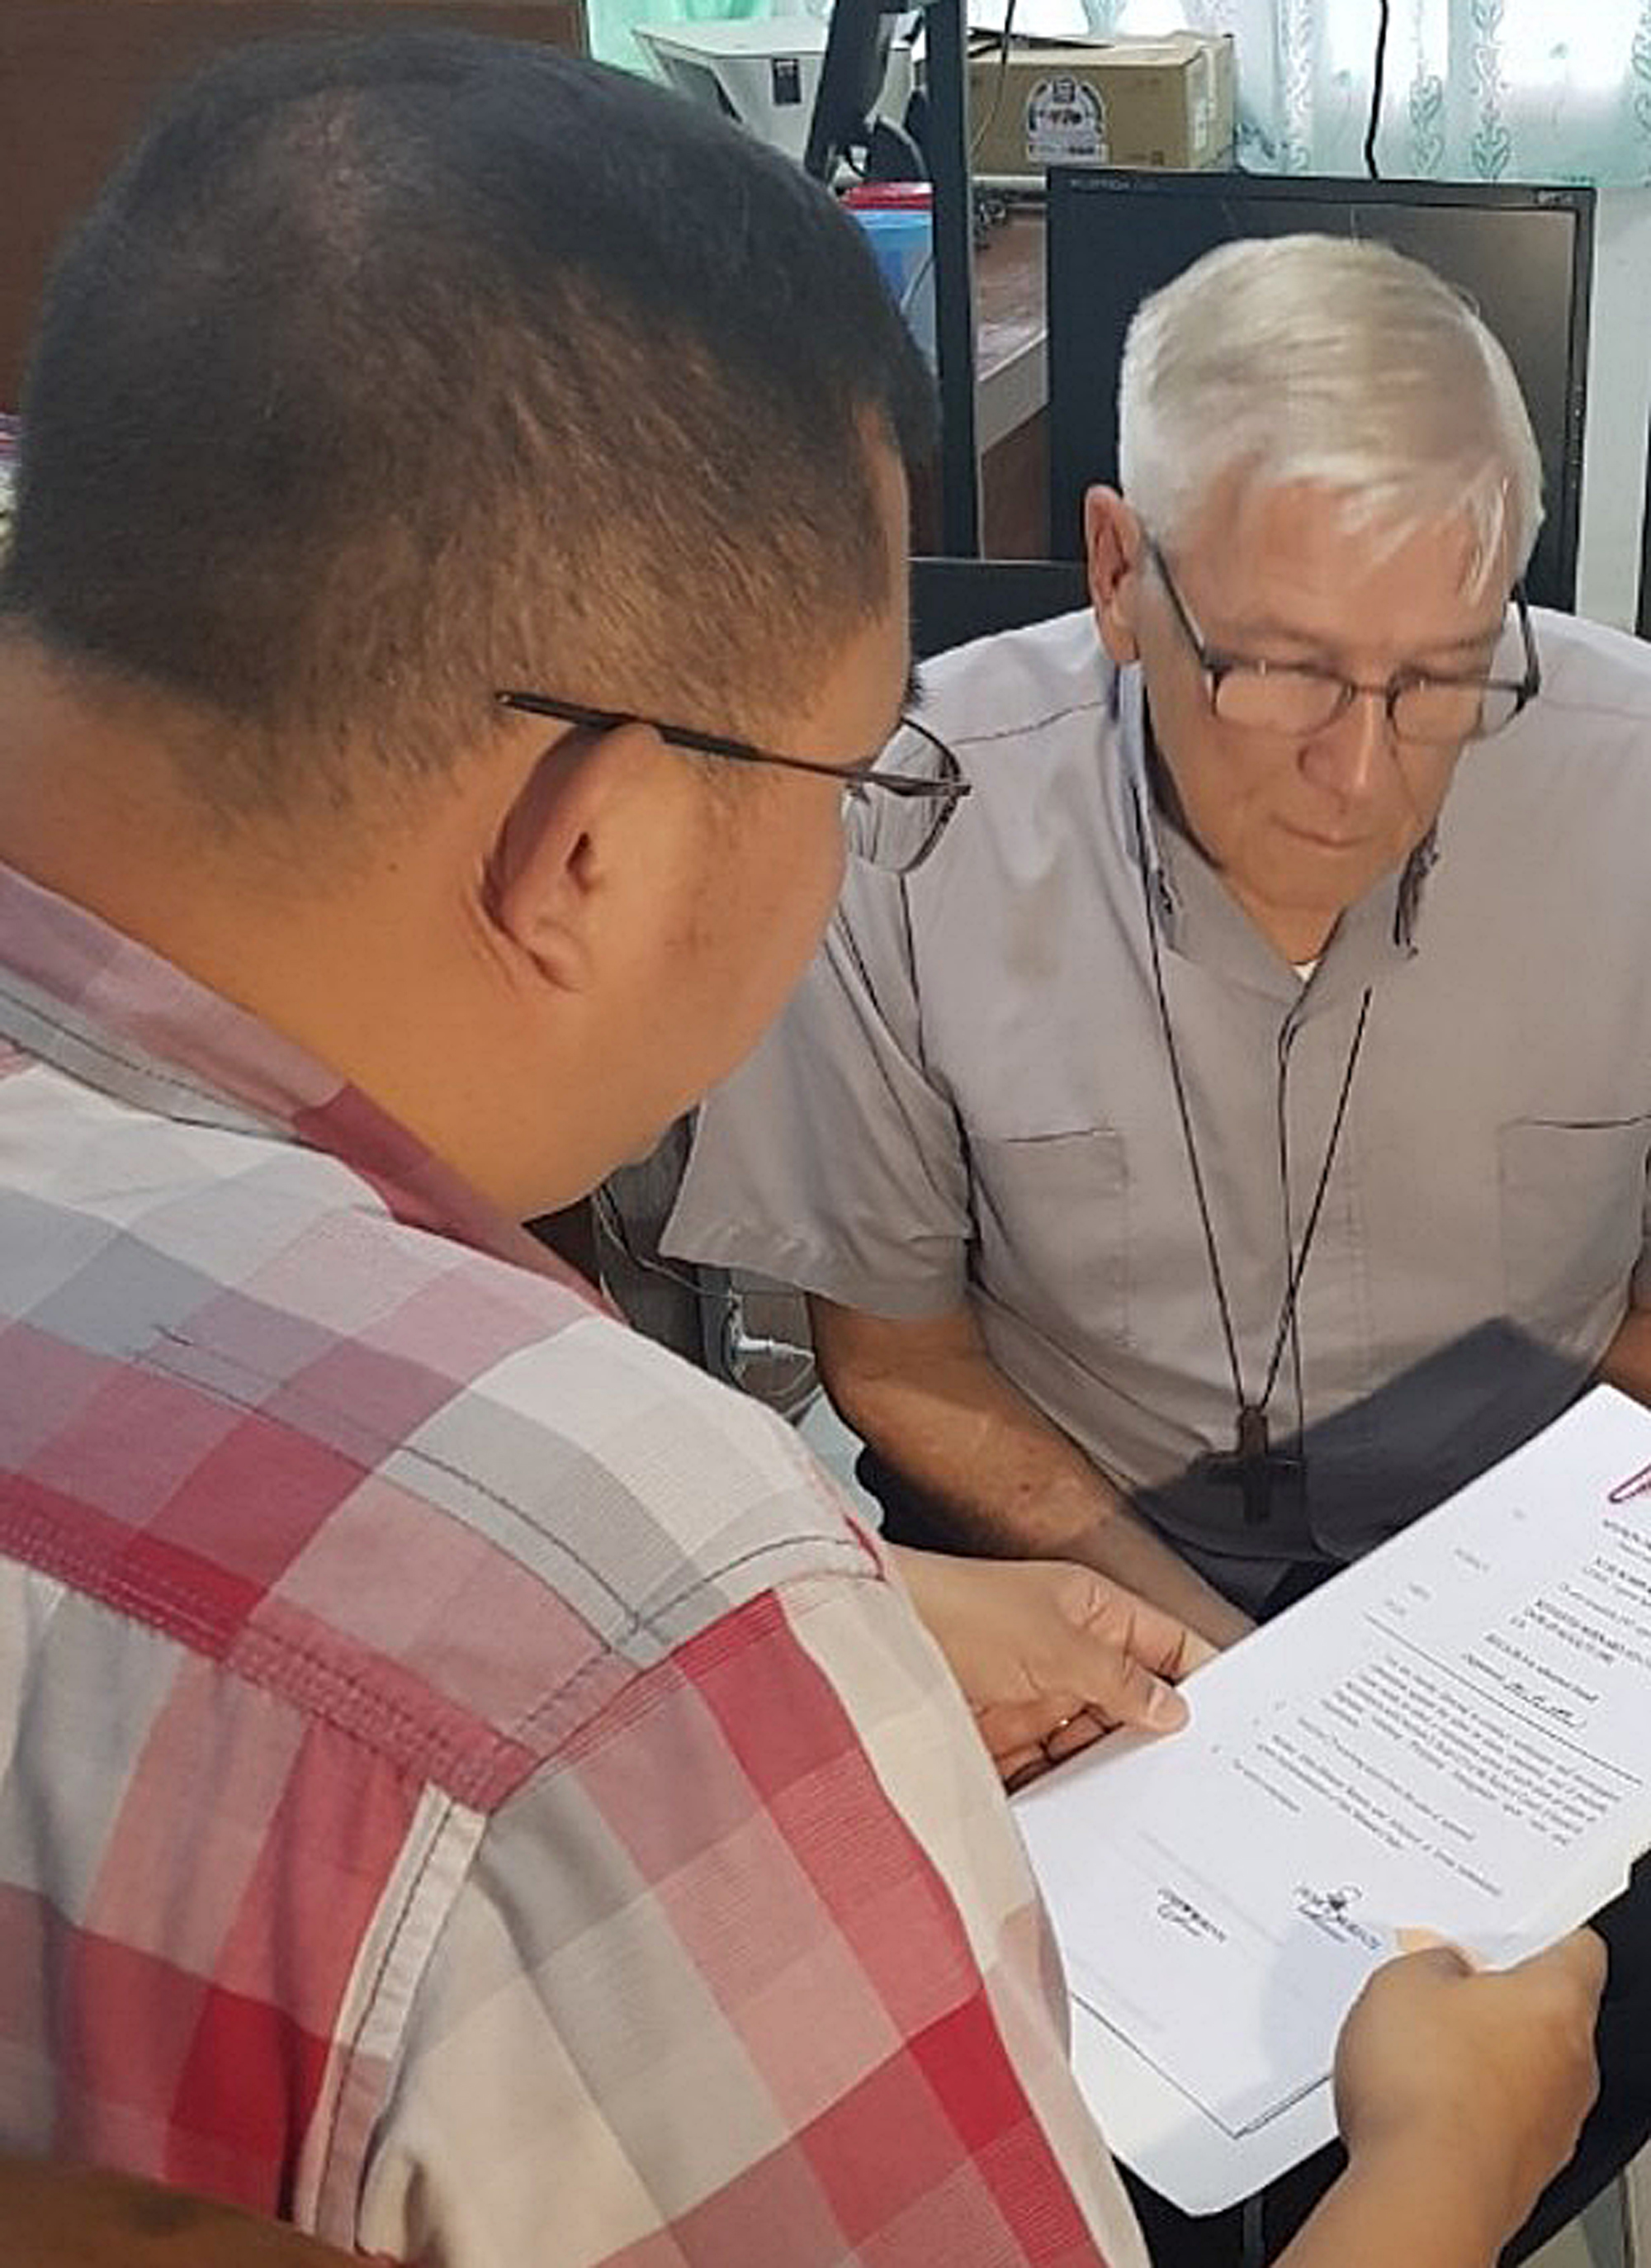 In this Bureau of Immigration photo, an American Roman Catholic priest, the Rev. Kenneth Bernard Hendricks, right, looks at documents after being arrested in a church in Naval in the island province of Biliran, central Philippines, Dec. 5, 2018.